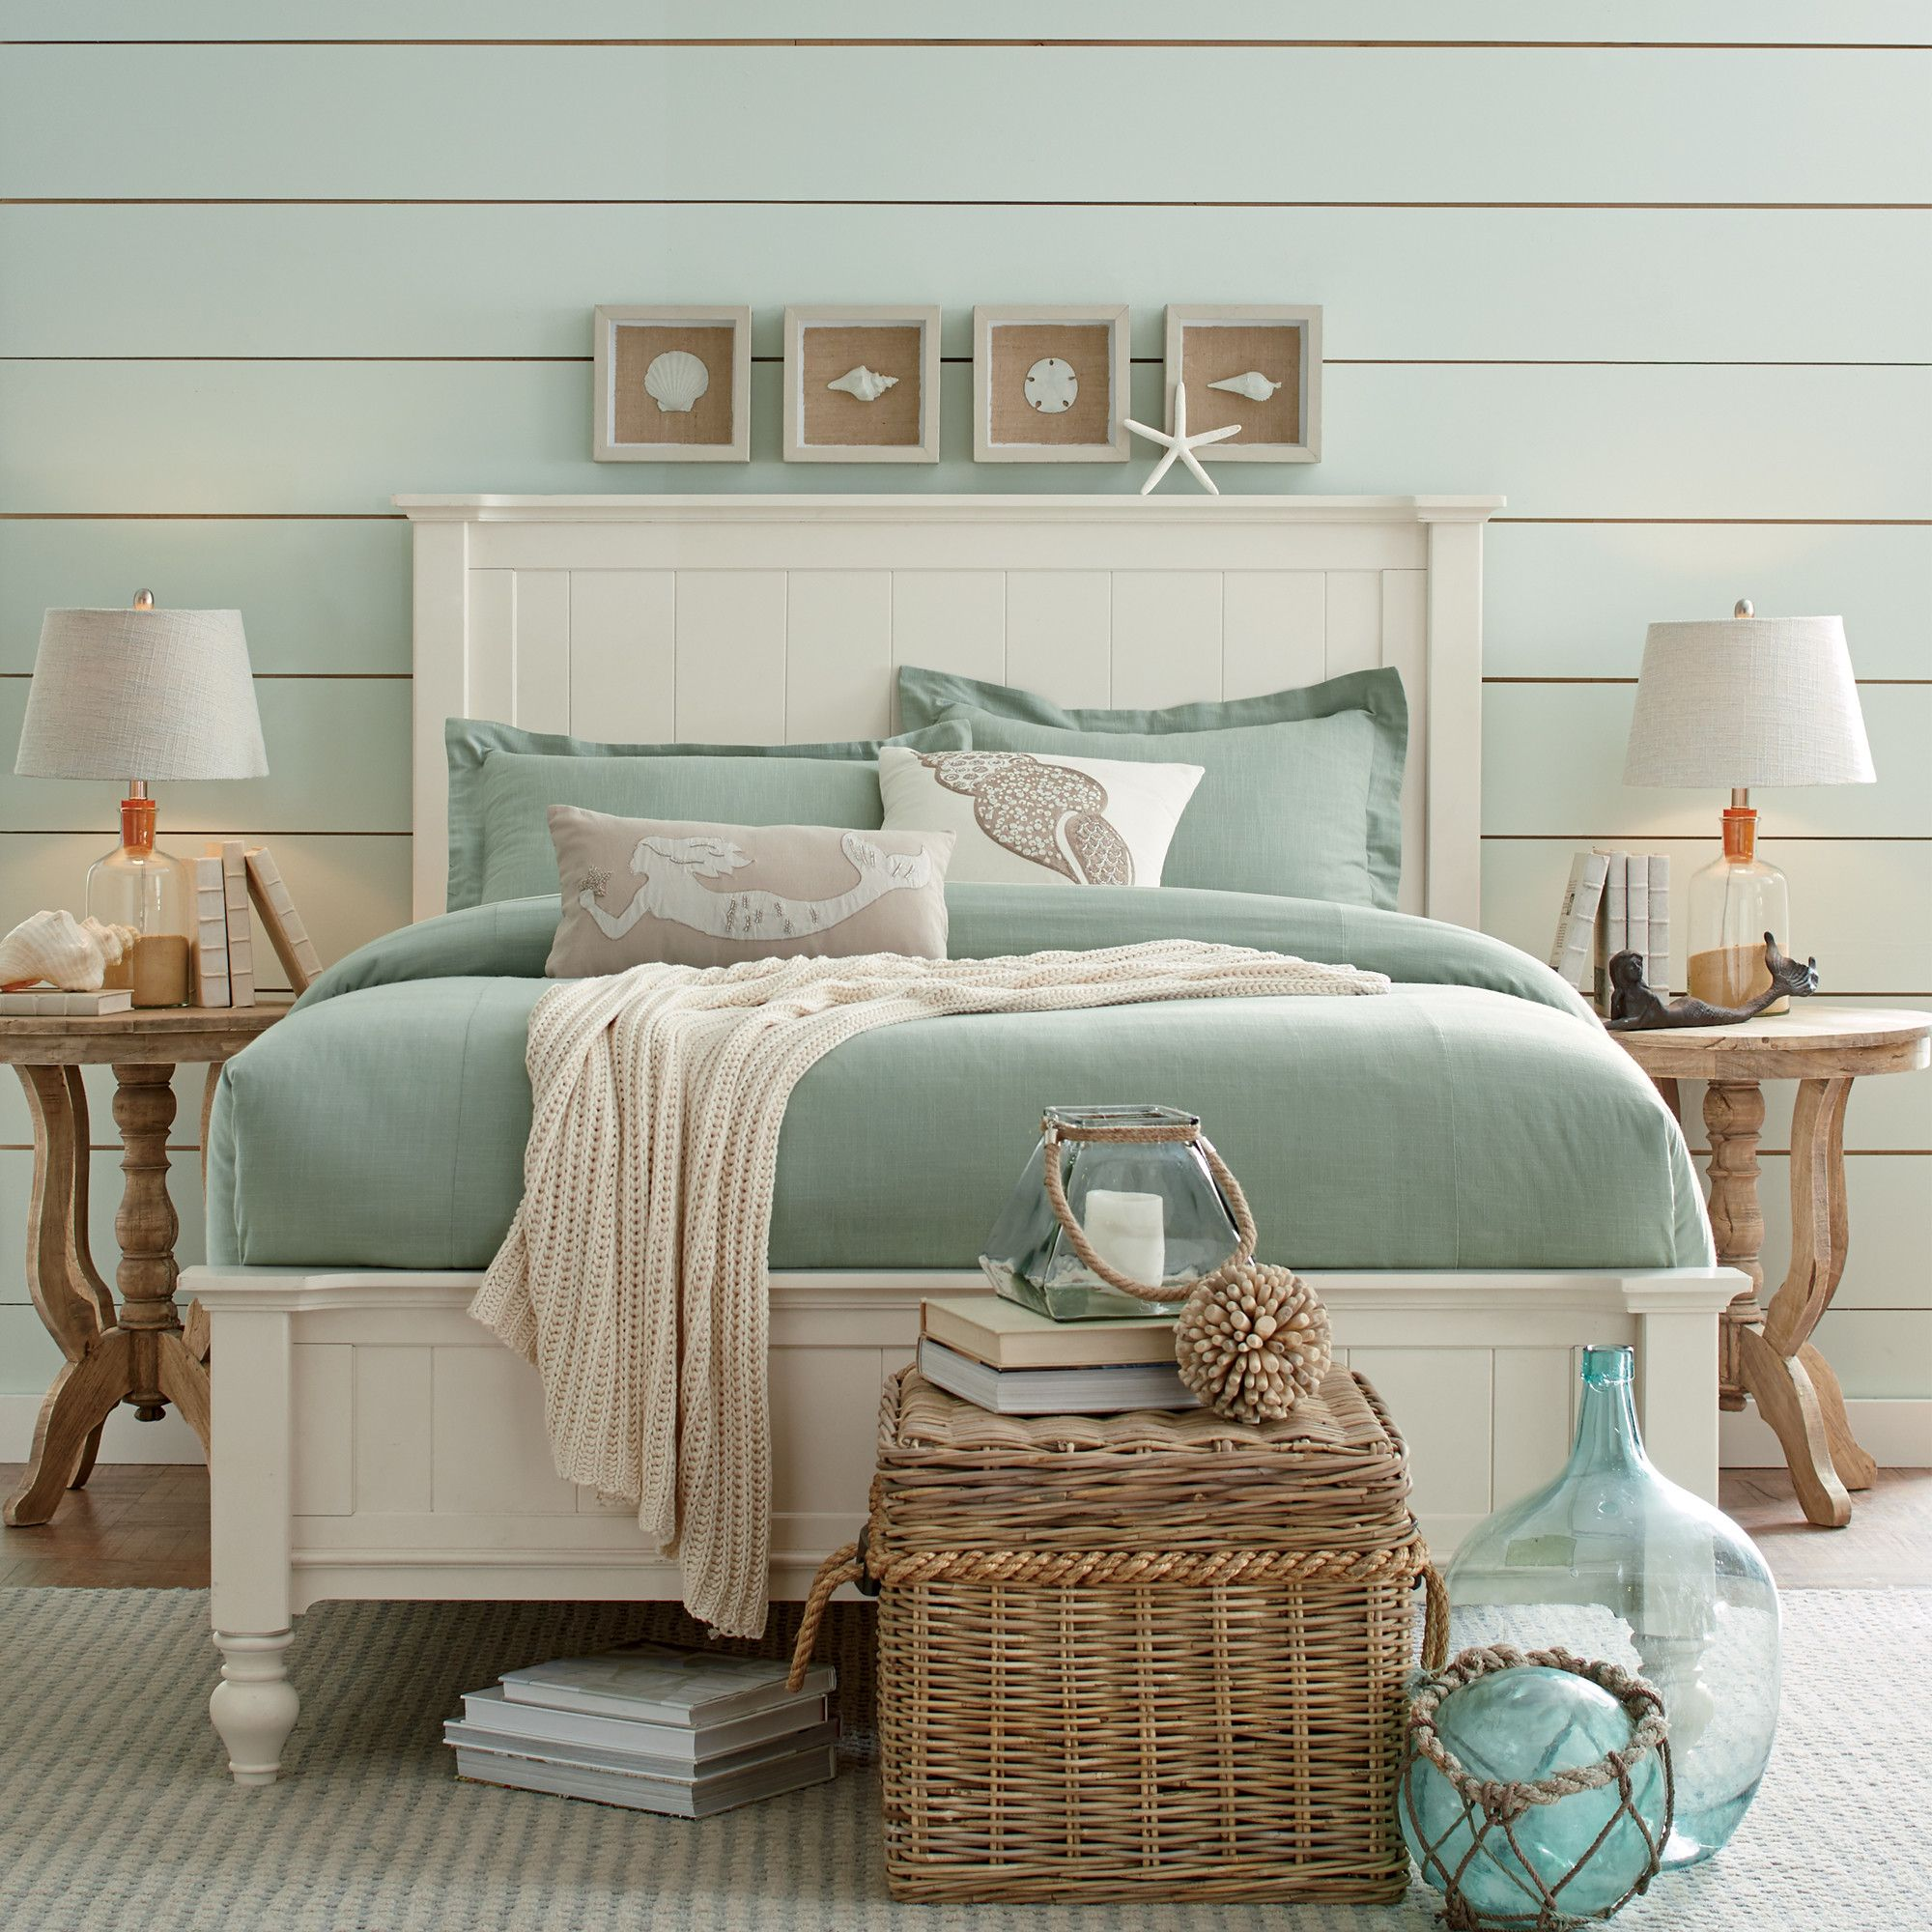 Beach Chic Ideas to Try at Home | Beach cottage | Beach house decor ...